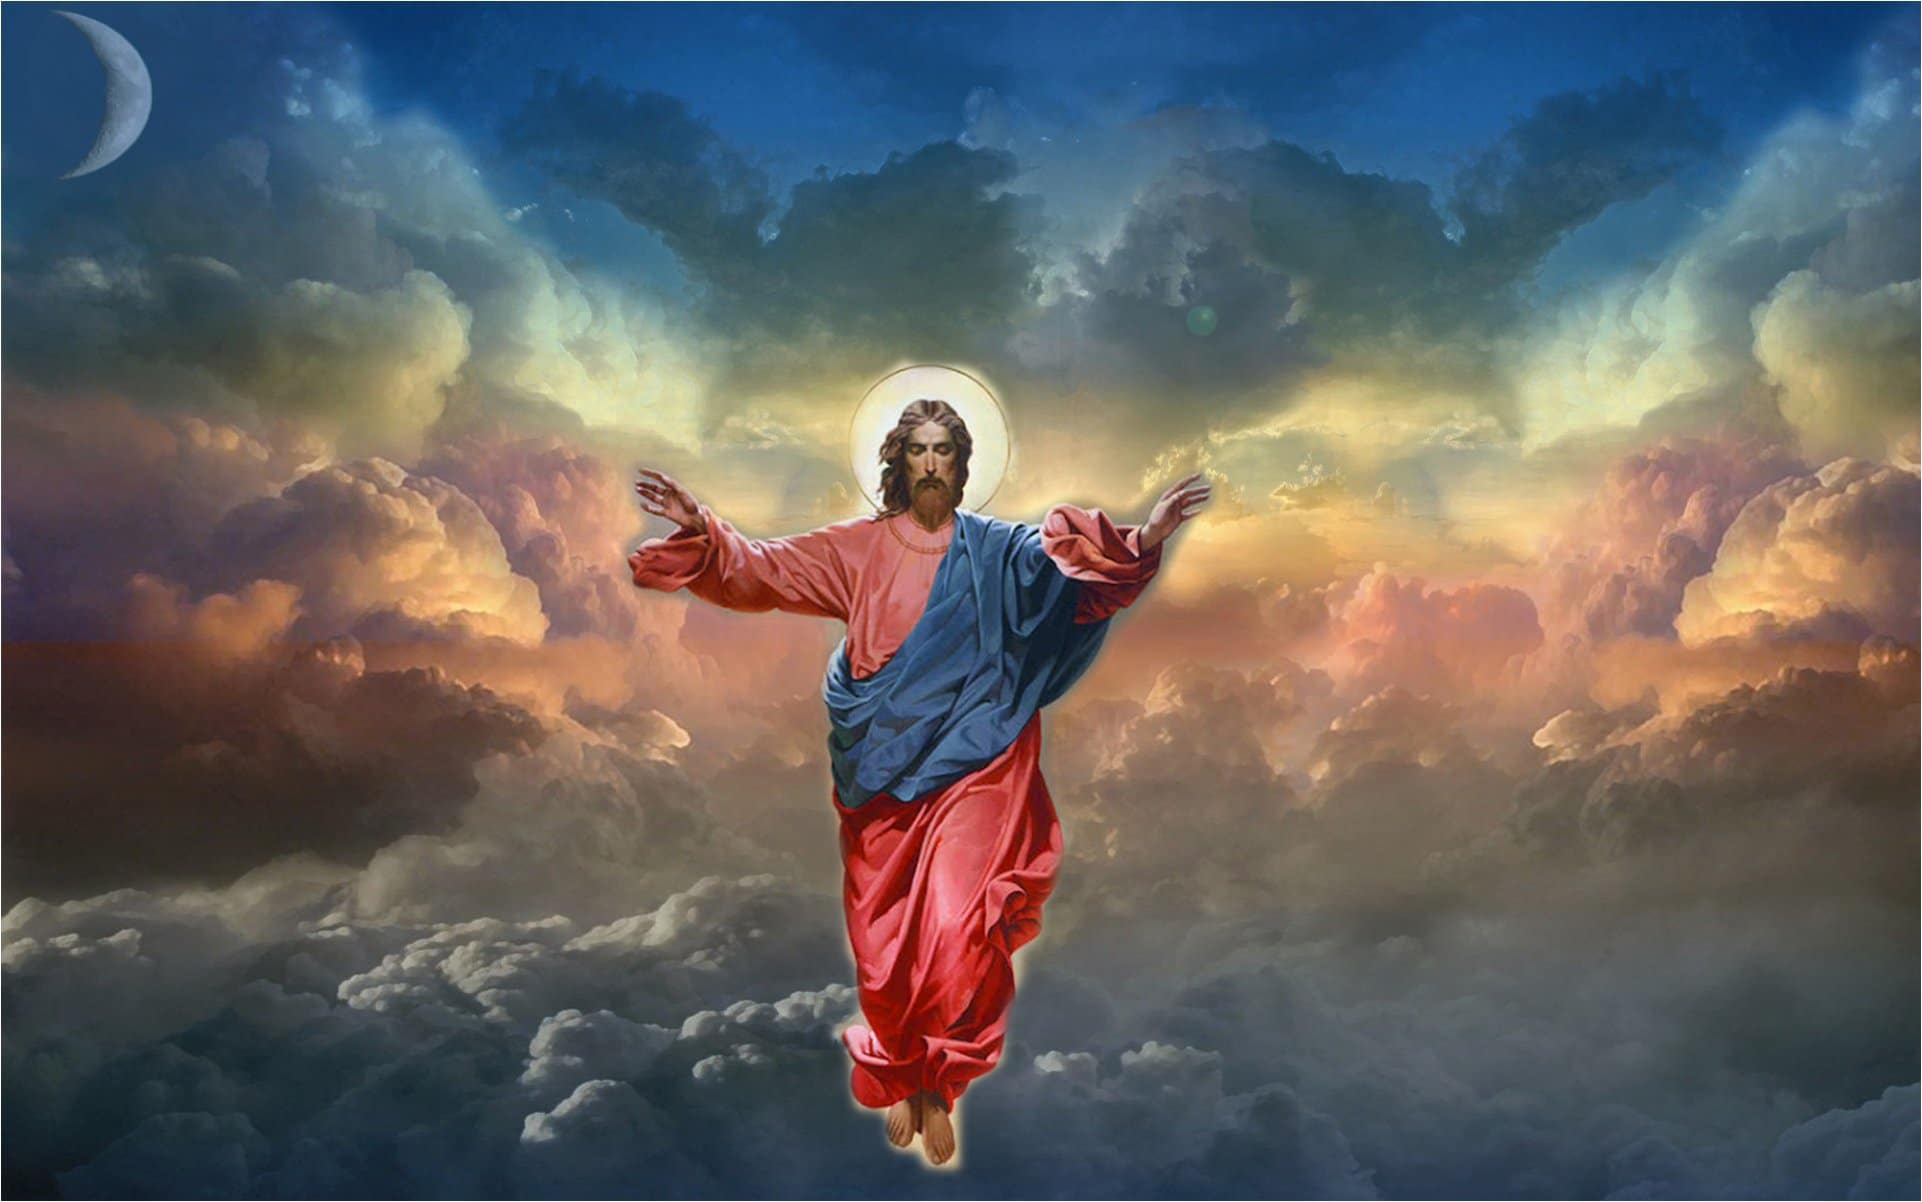 The Ascension of Jesus Wallpaper